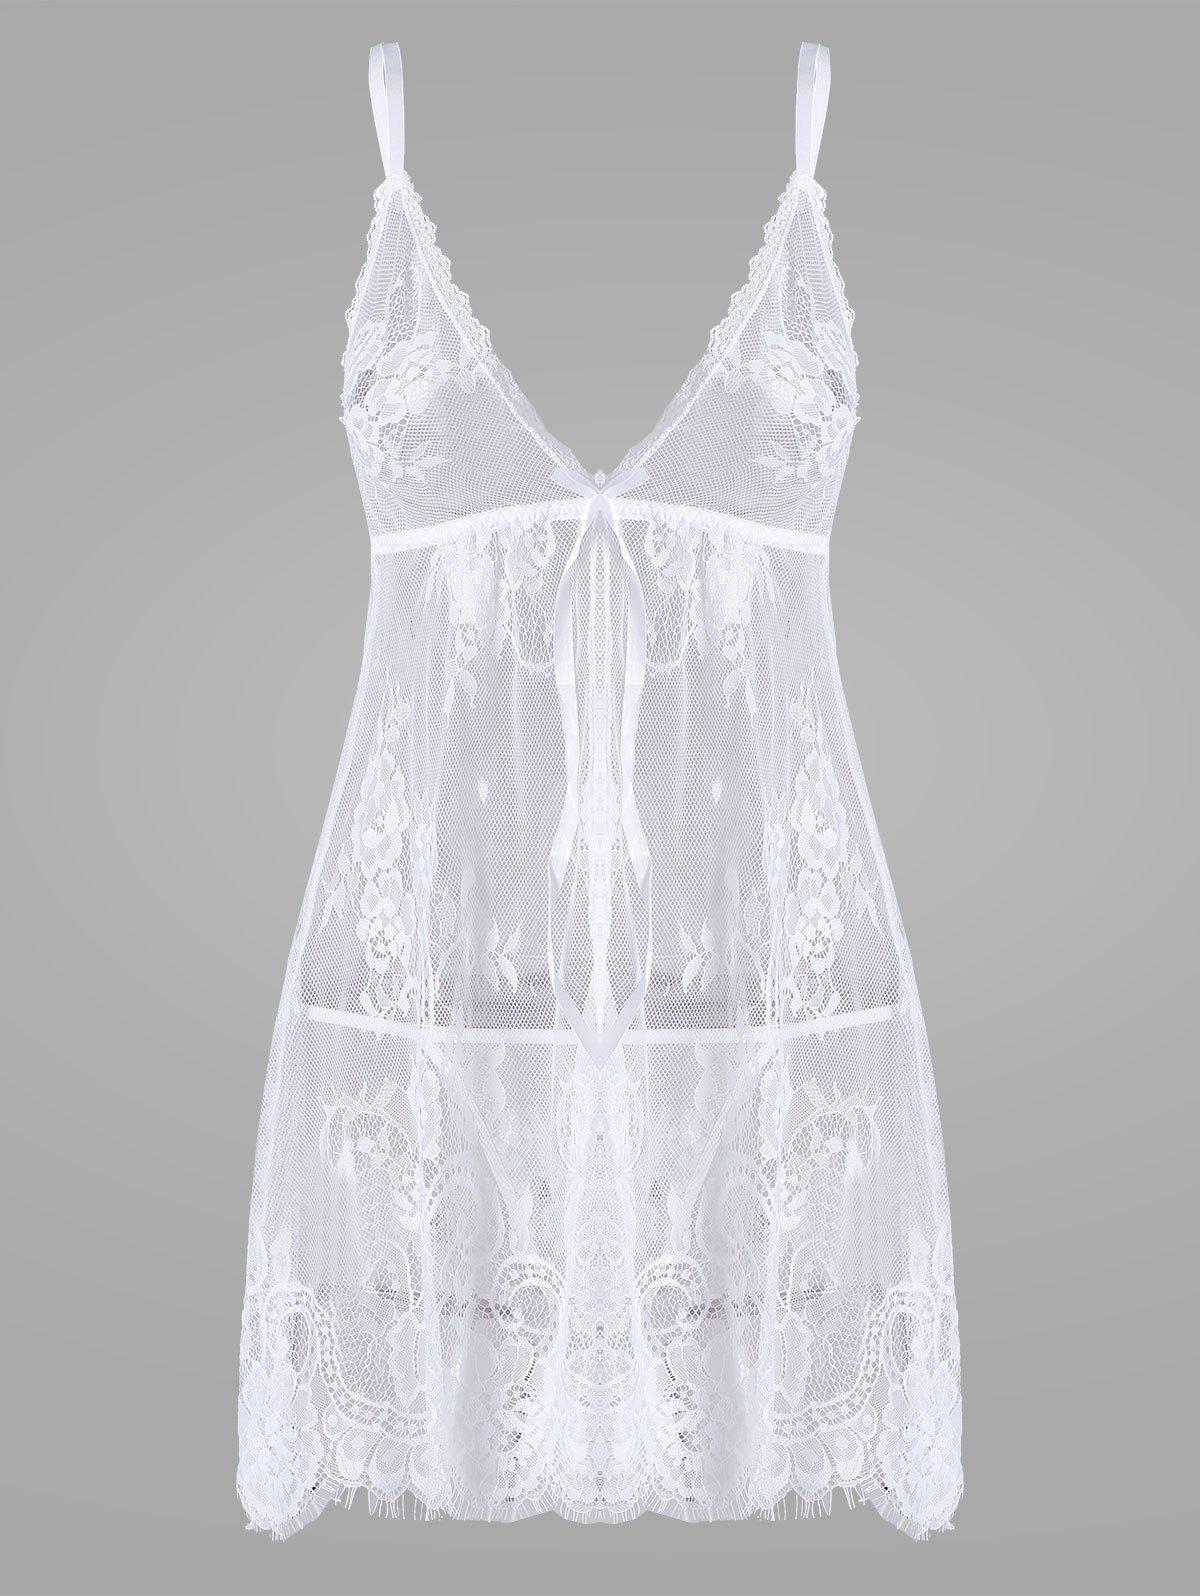 Hot Lace Split Sheer Slip Babydoll